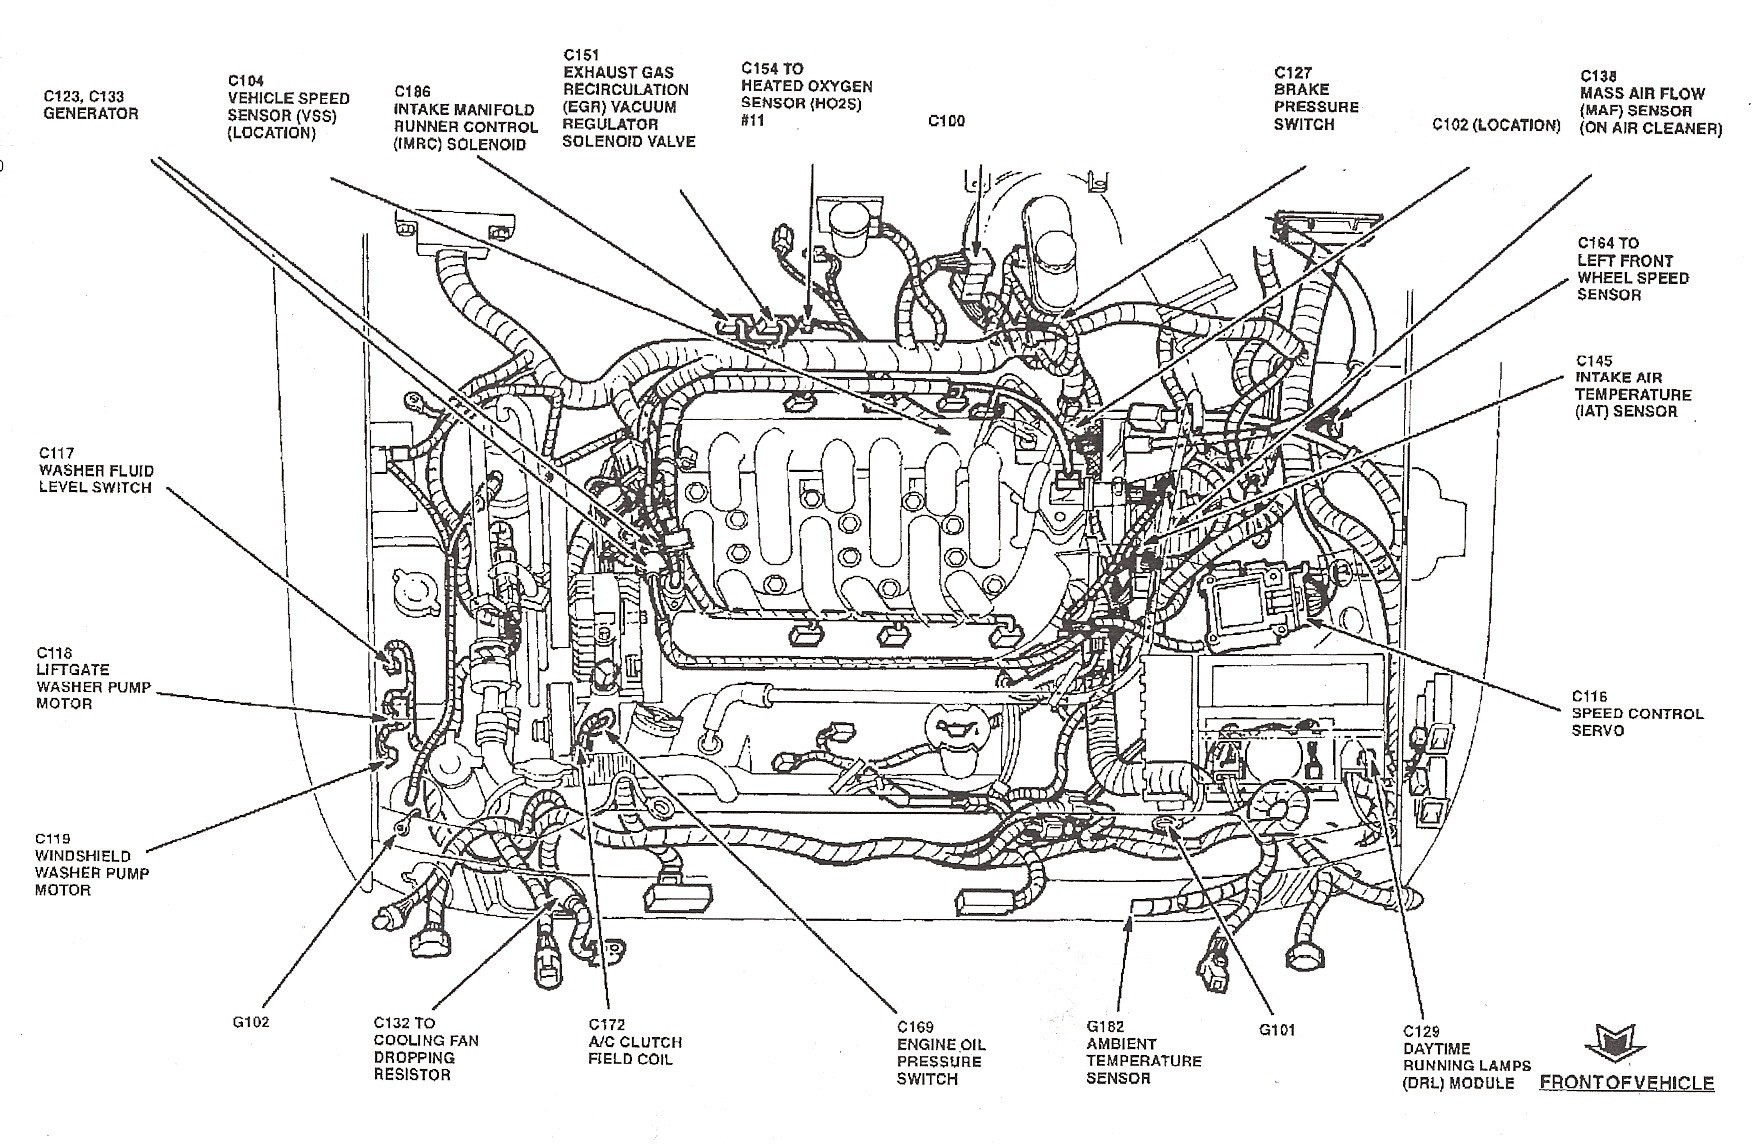 hight resolution of 1998 ford taurus engine diagram 2000 ford windstar wiring diagram blurts of 1998 ford taurus engine